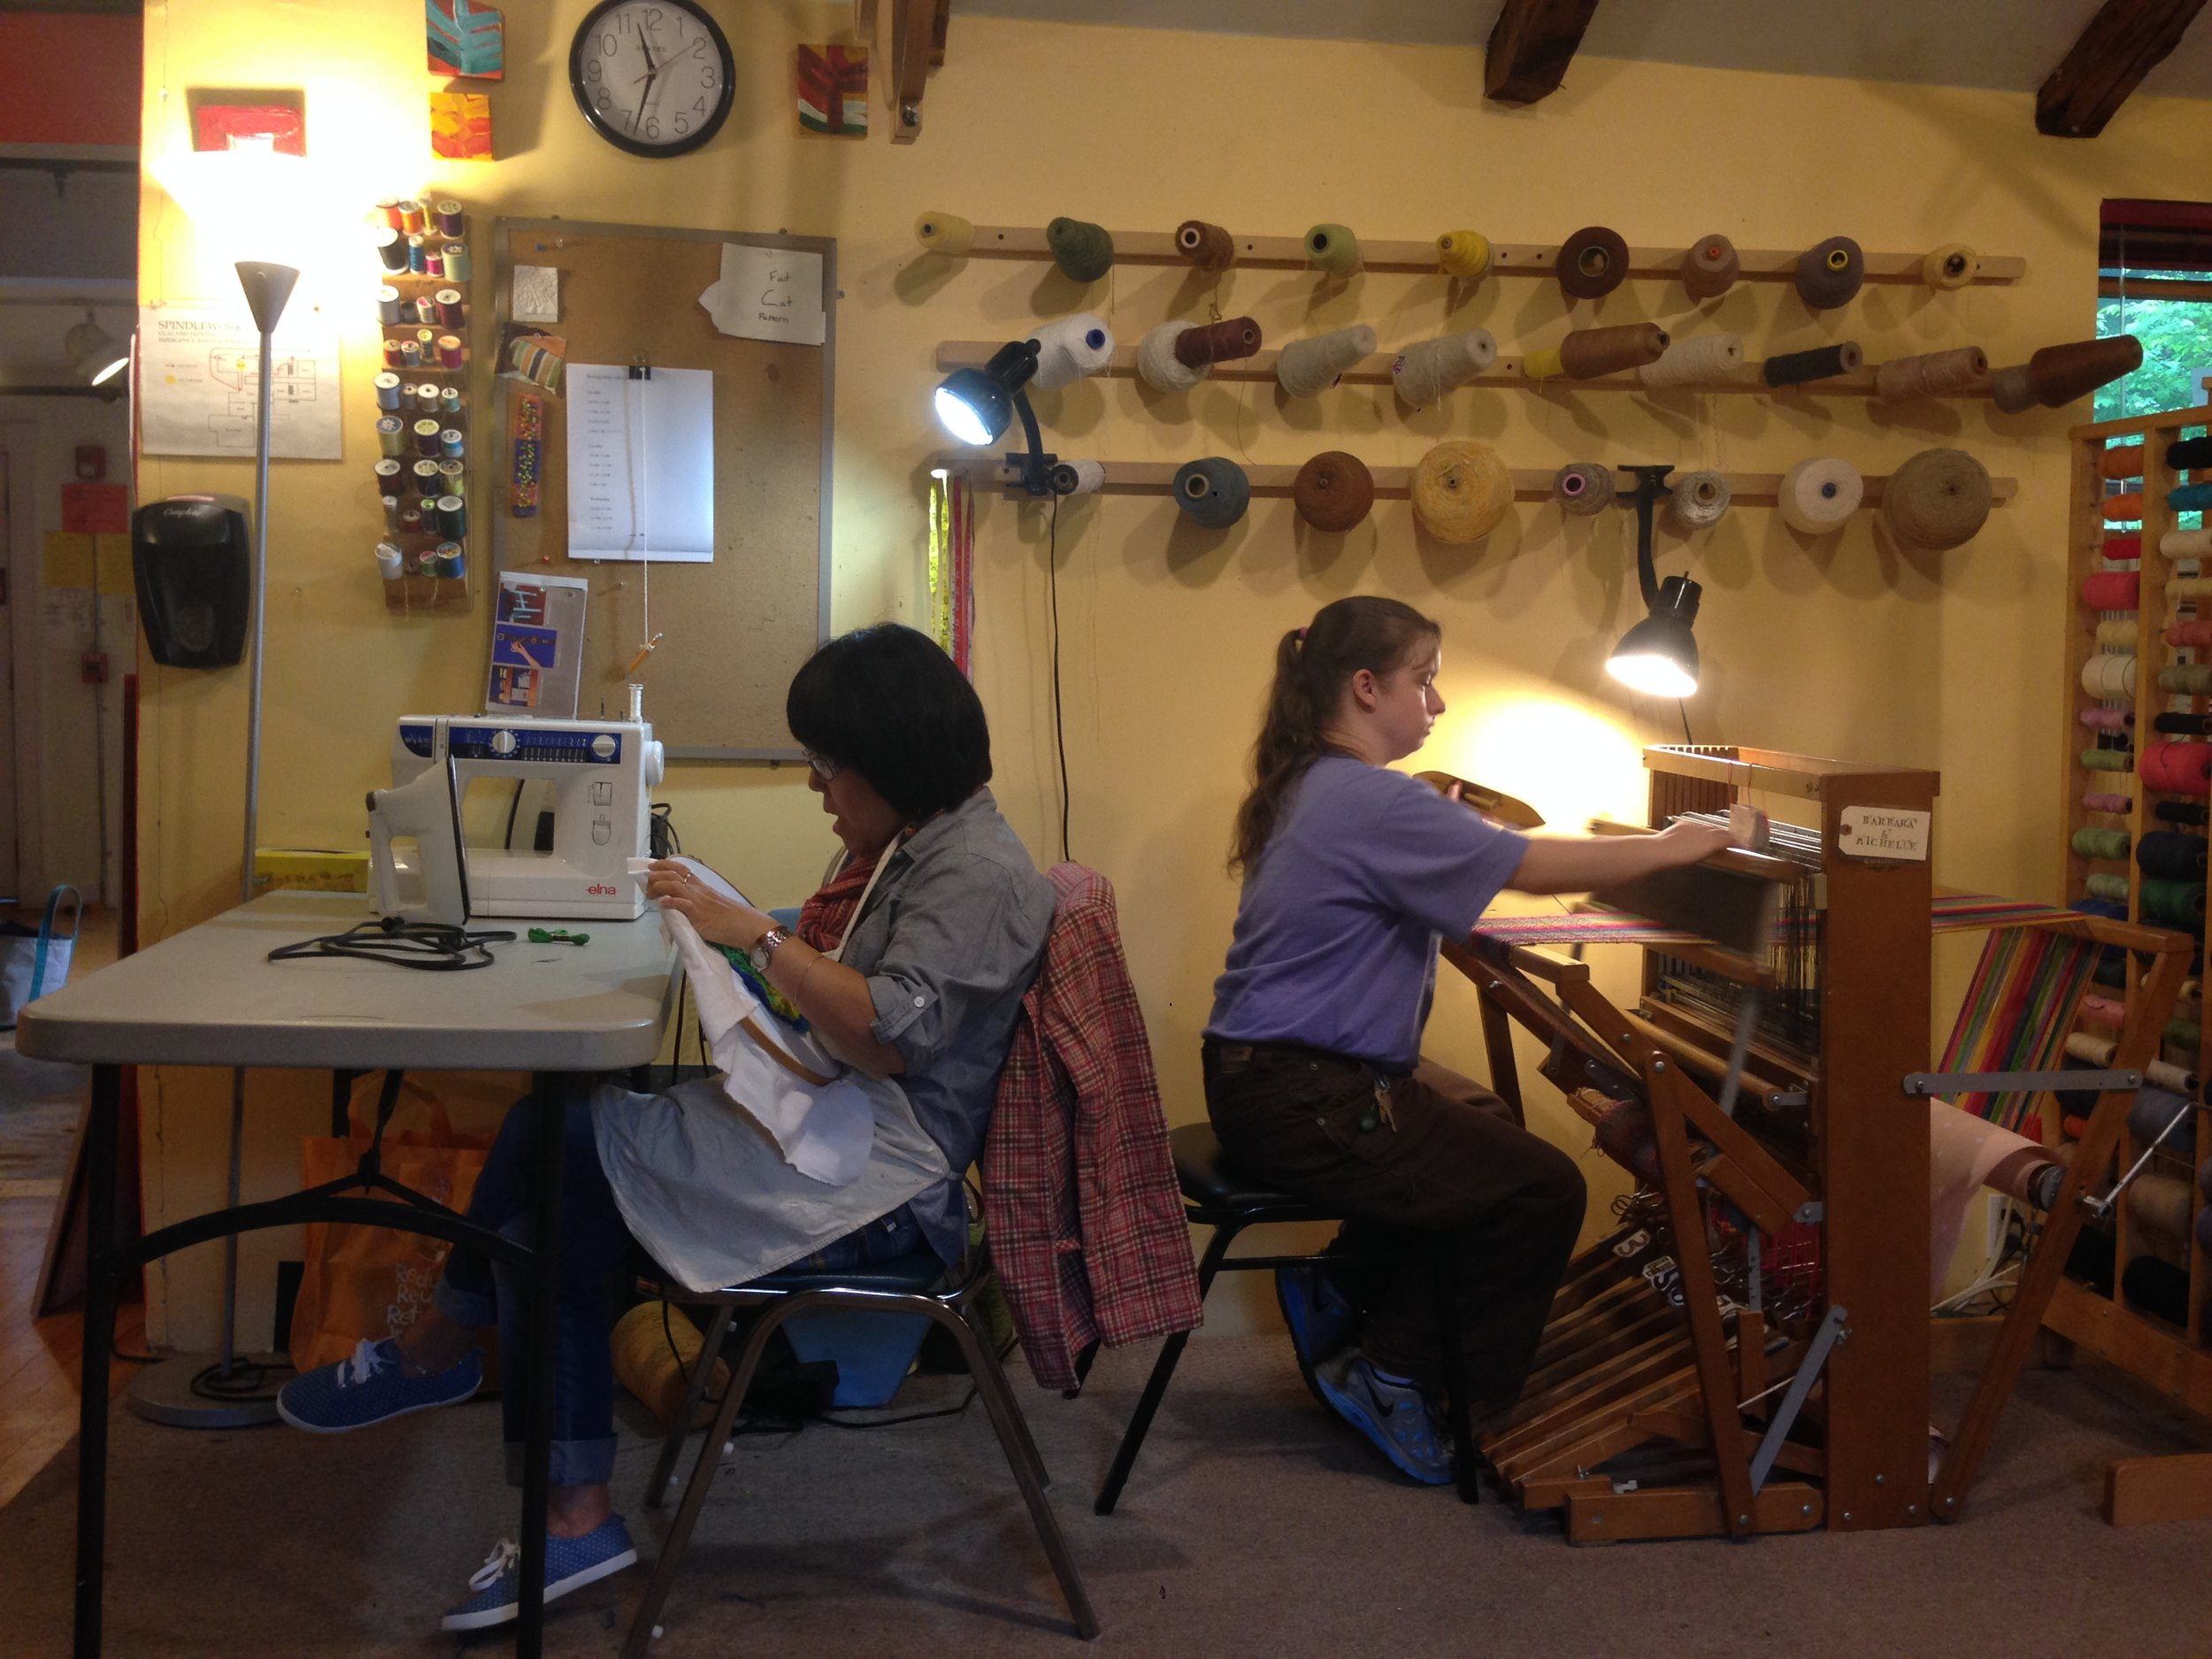 Kim and Michelle sewing and weaving, respectively